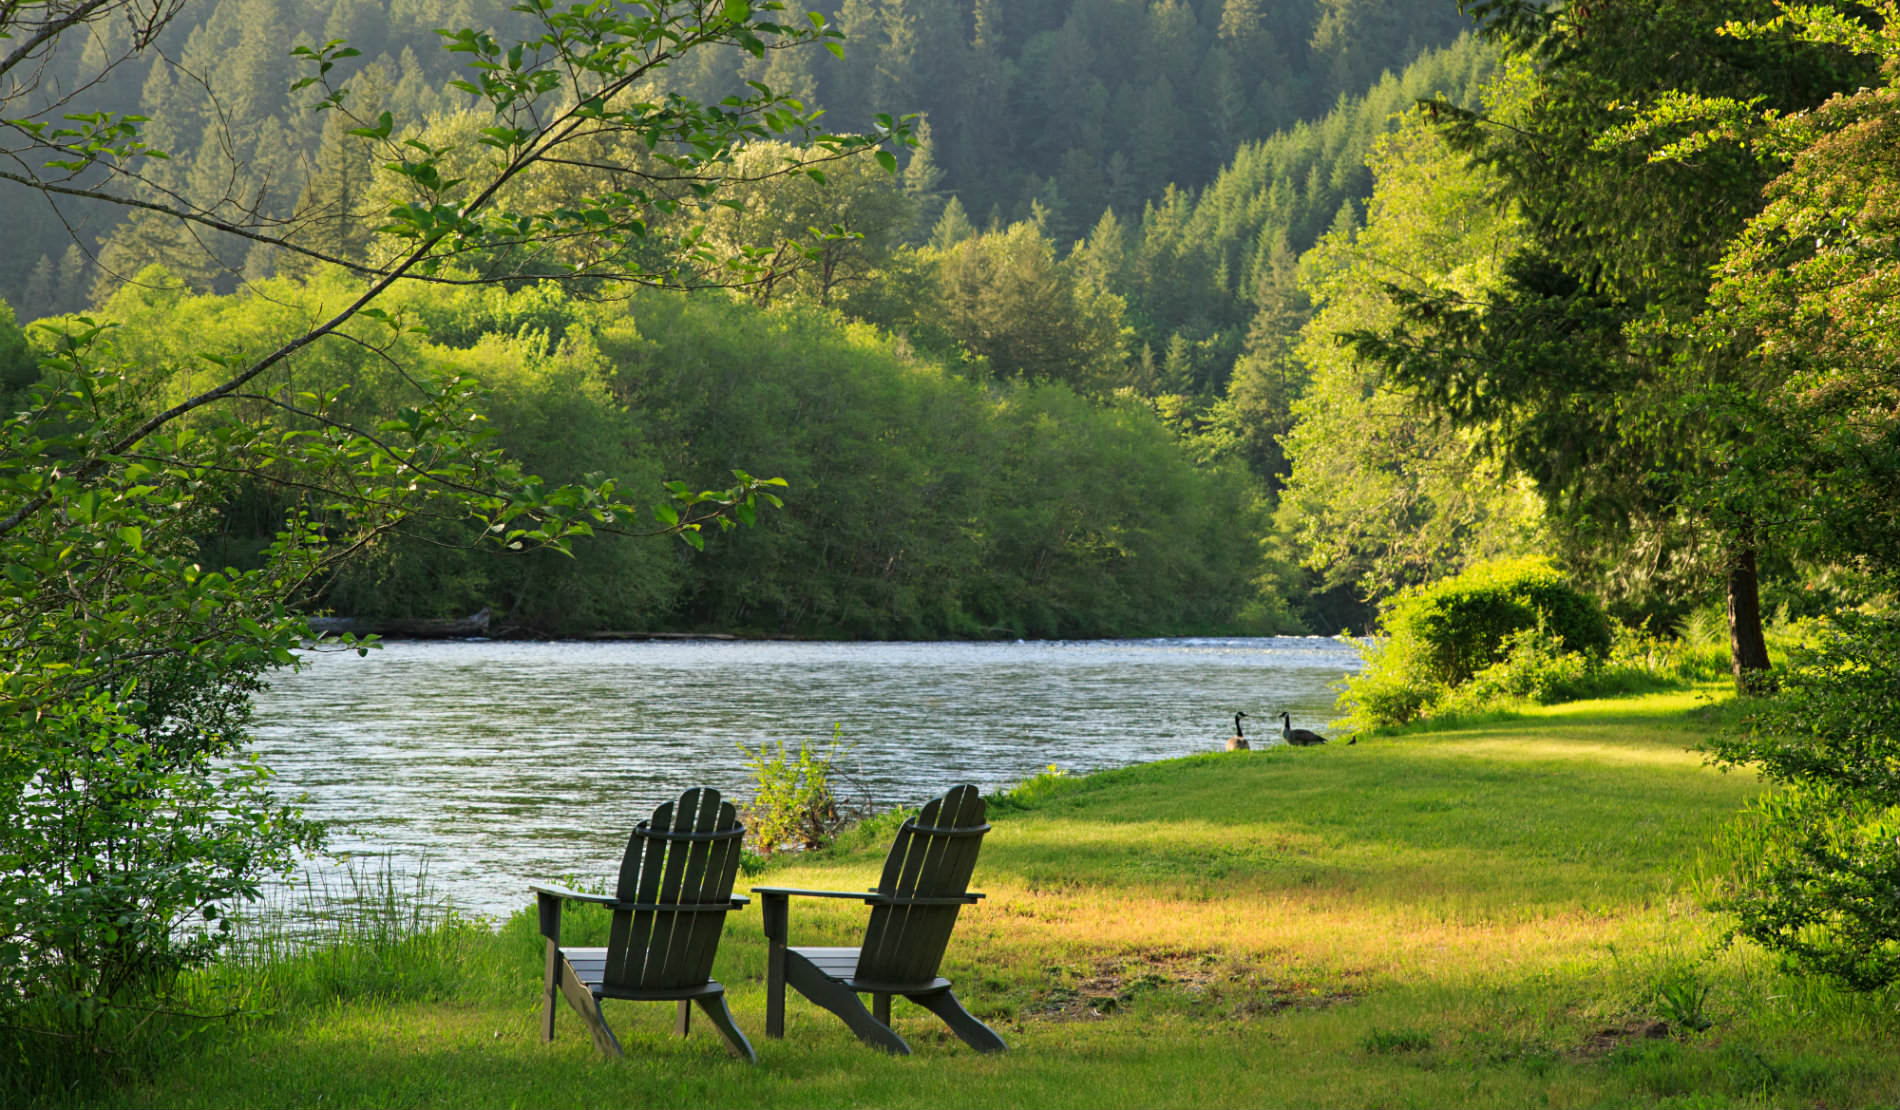 Two wooden Adirondack chairs on green grass facing river with two geese on bank